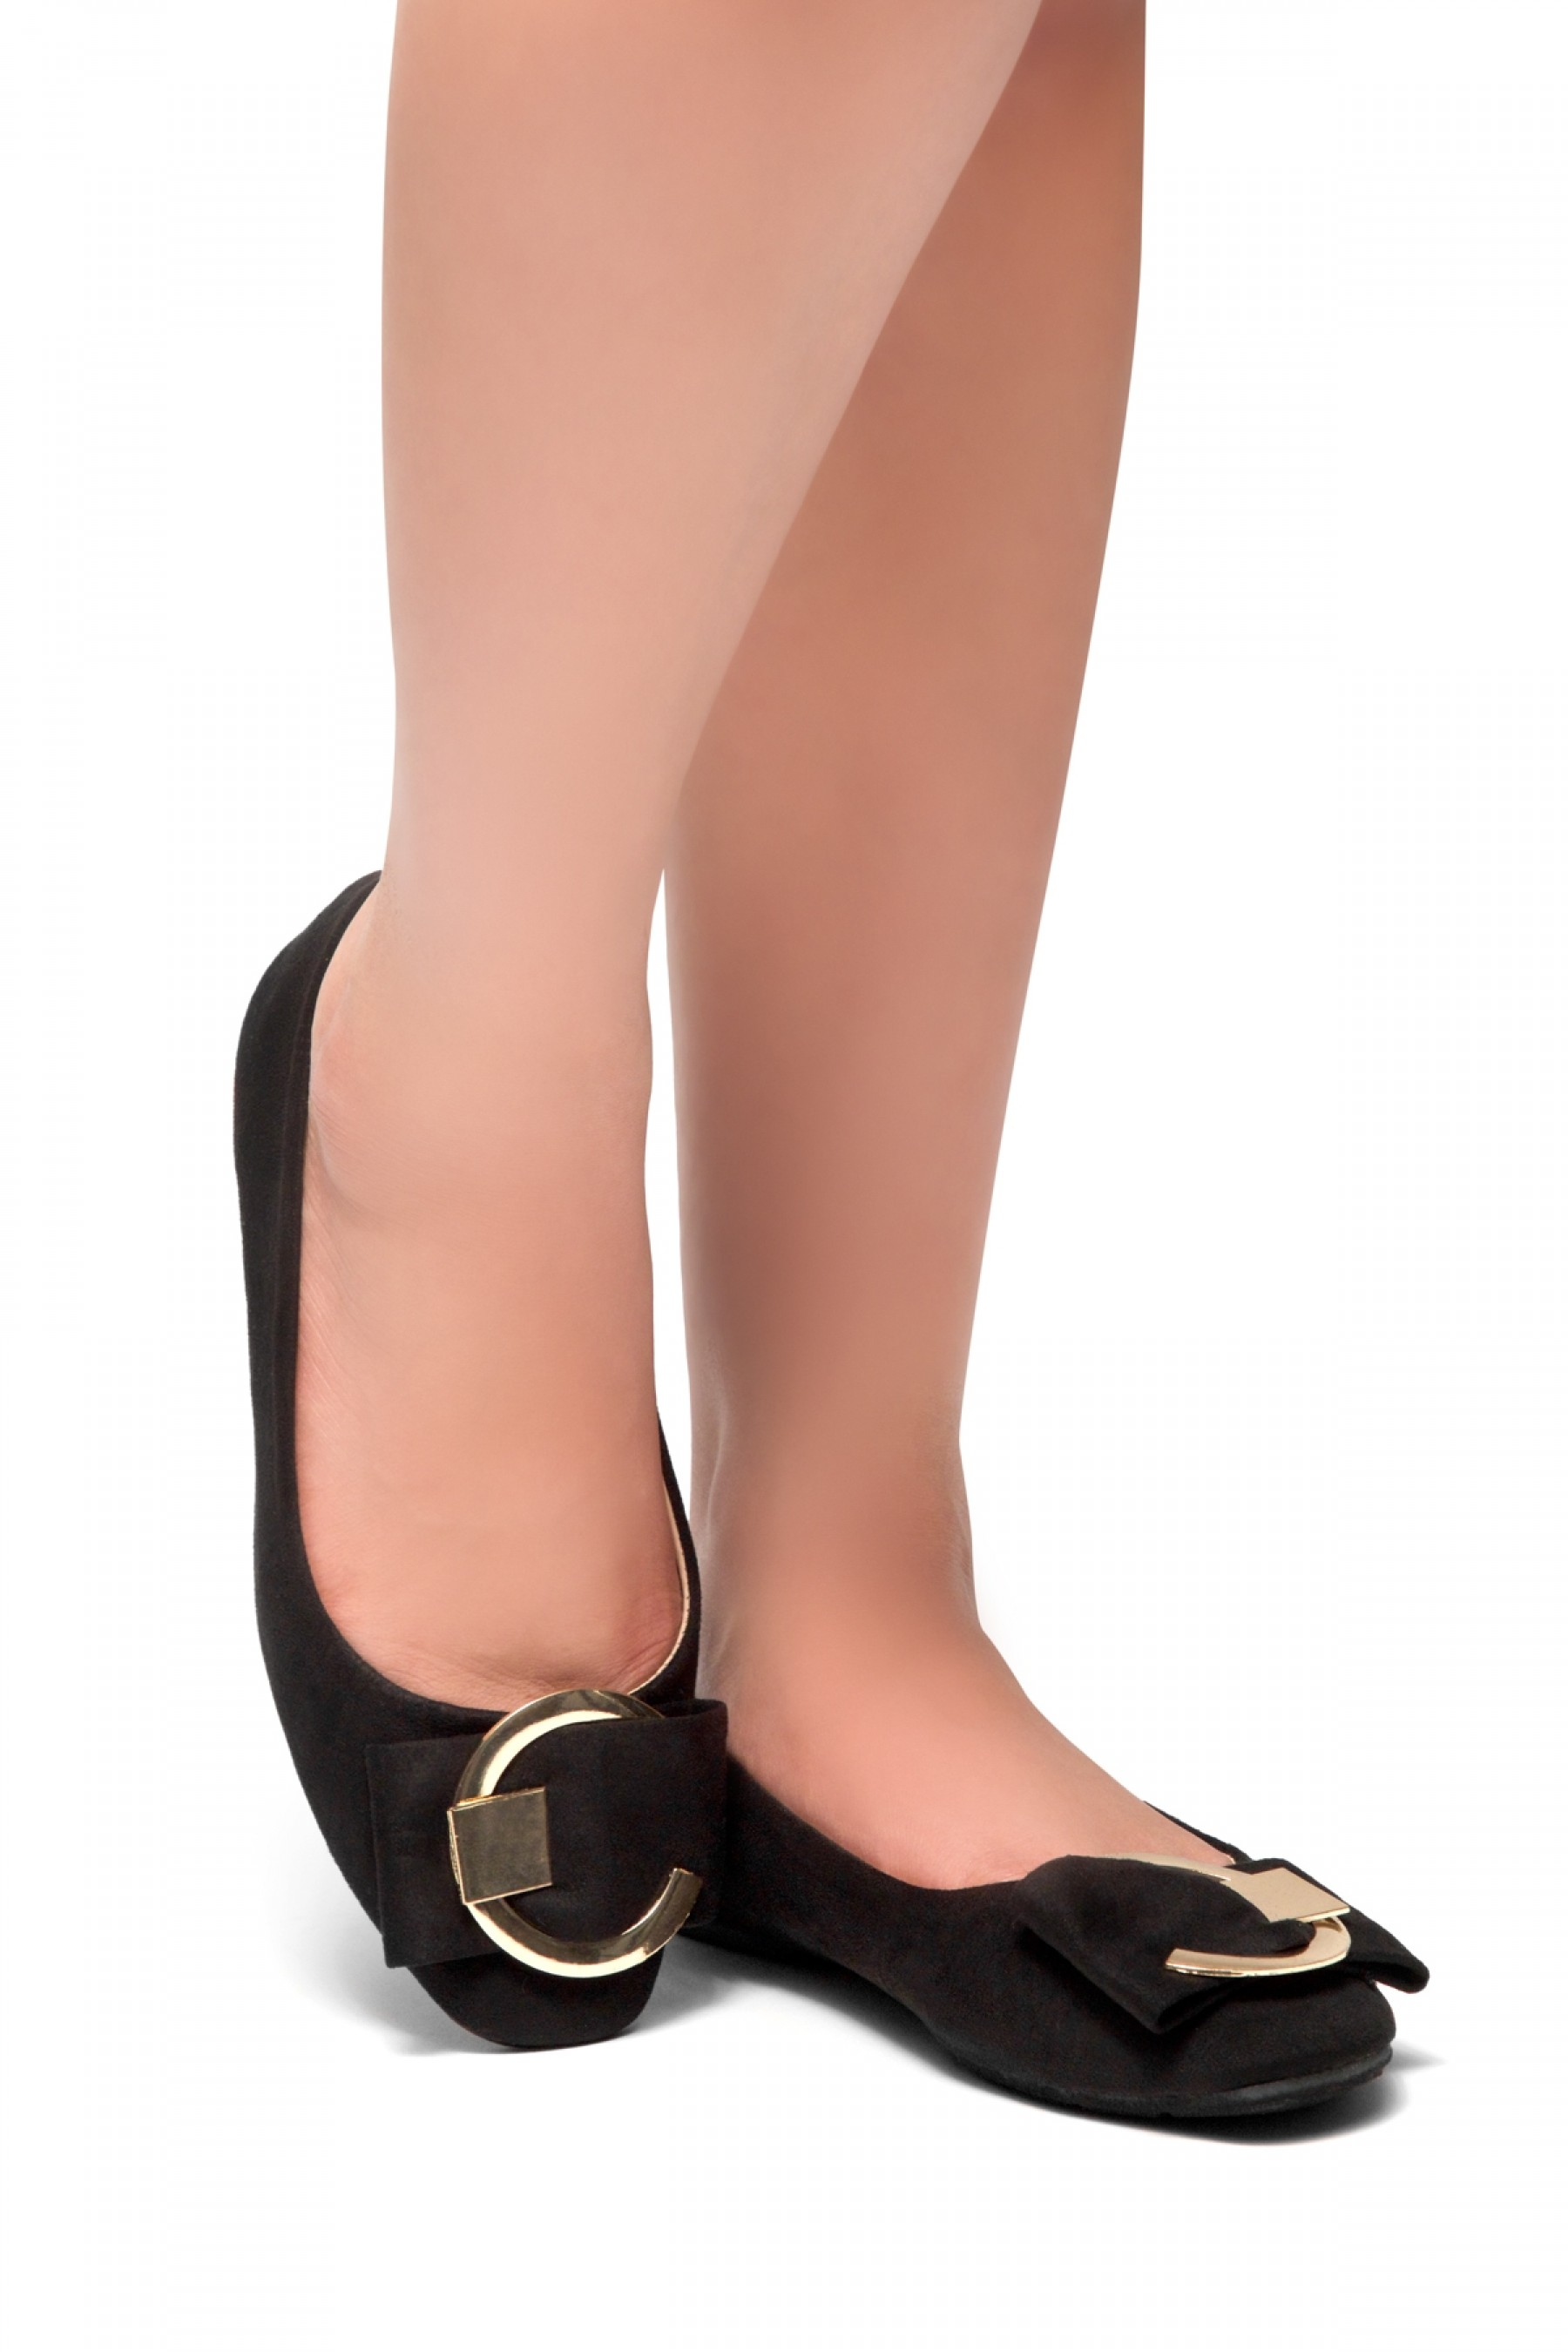 HerStyle Indro-Square Almond toe with grommet buckle ballerinas (Black)